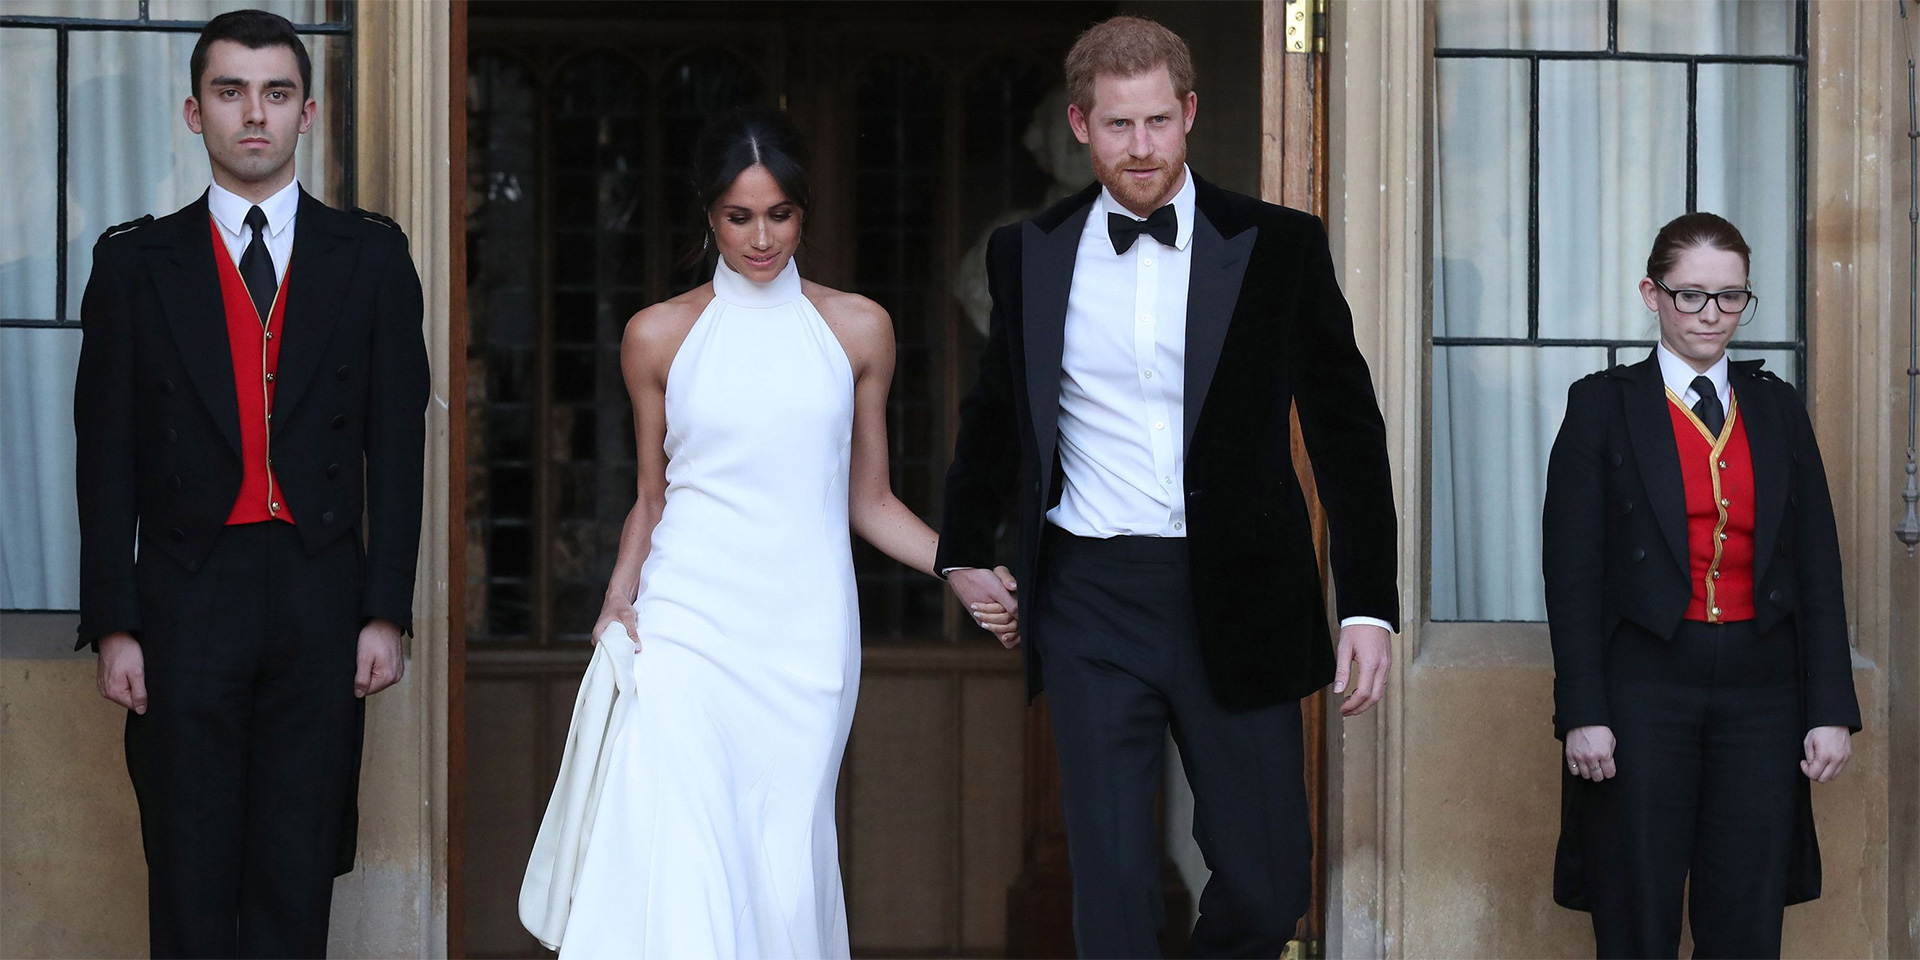 Royal Wedding: Prince Harry and Meghan Markle aka the Duke and Duchess of Sussex depart Windsor Castle for their evening reception at Frogmore House on 19 May, 2018.